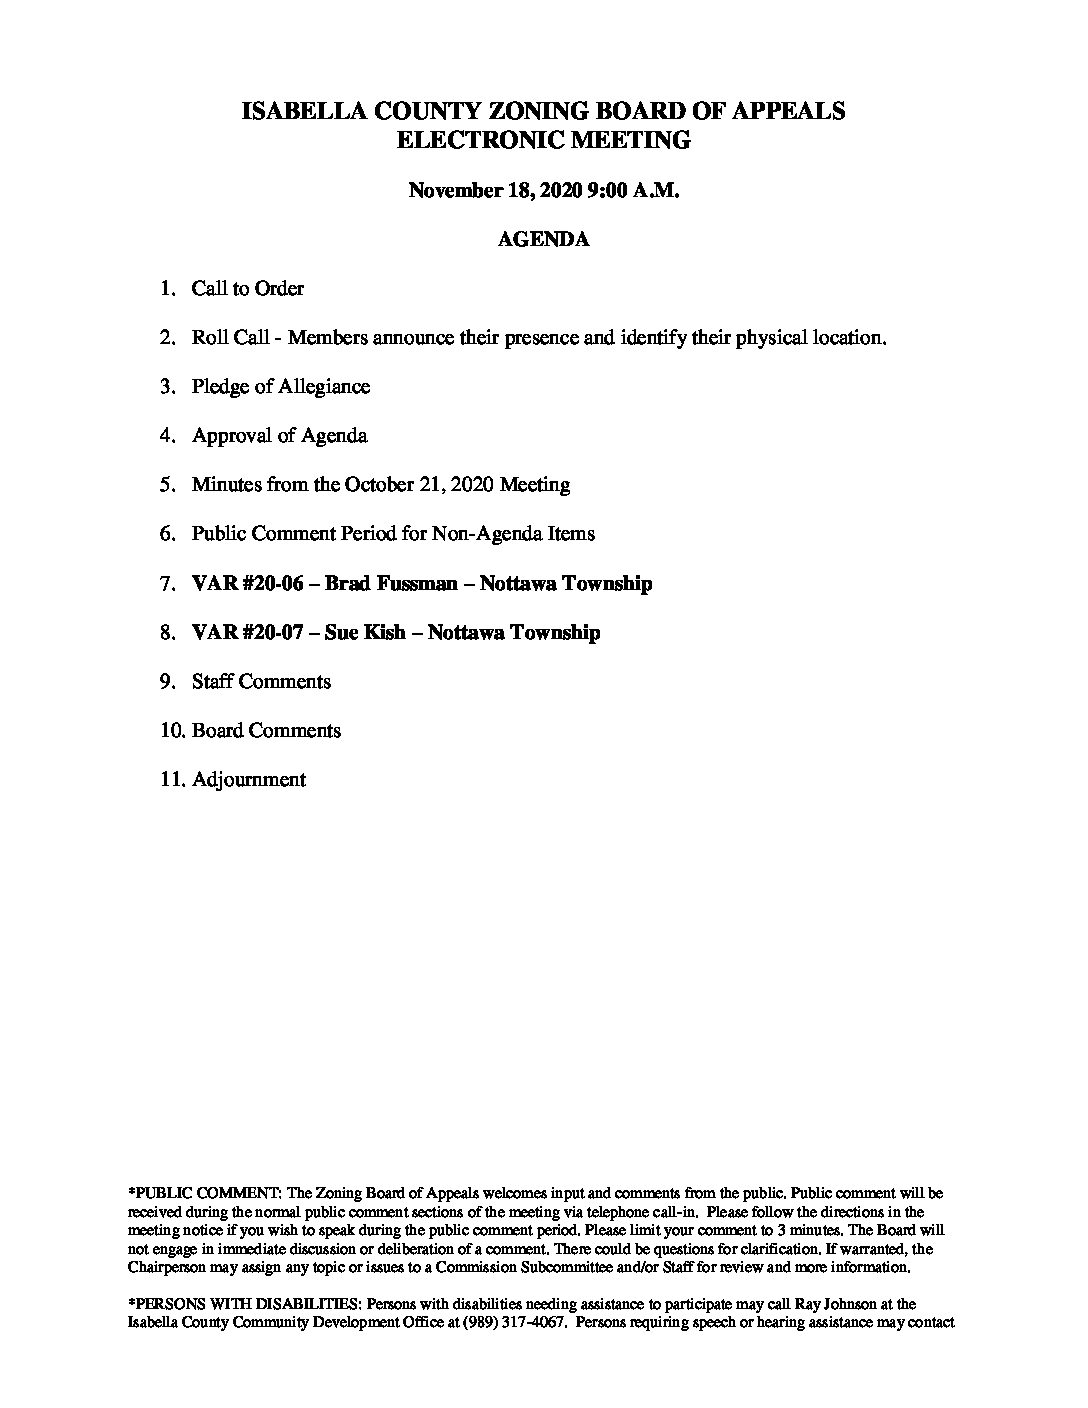 preview image of first page November 18, 2020 Agenda